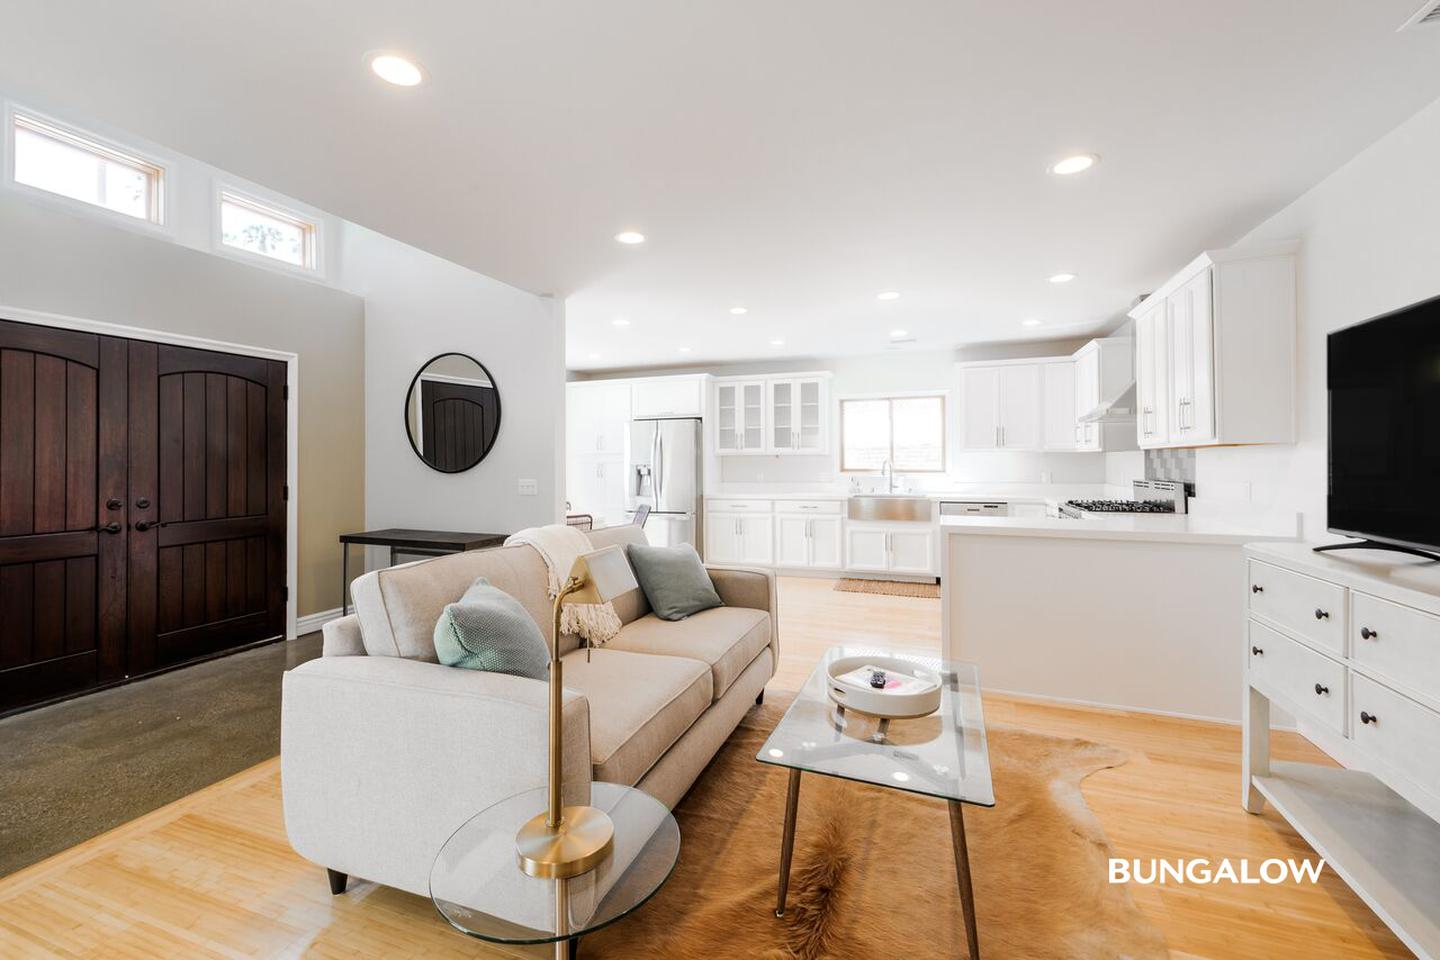 Sublets Near PCC Private Bedroom in Bright Silver Lake Home With Paved Backyard for Pasadena City College Students in Pasadena, CA